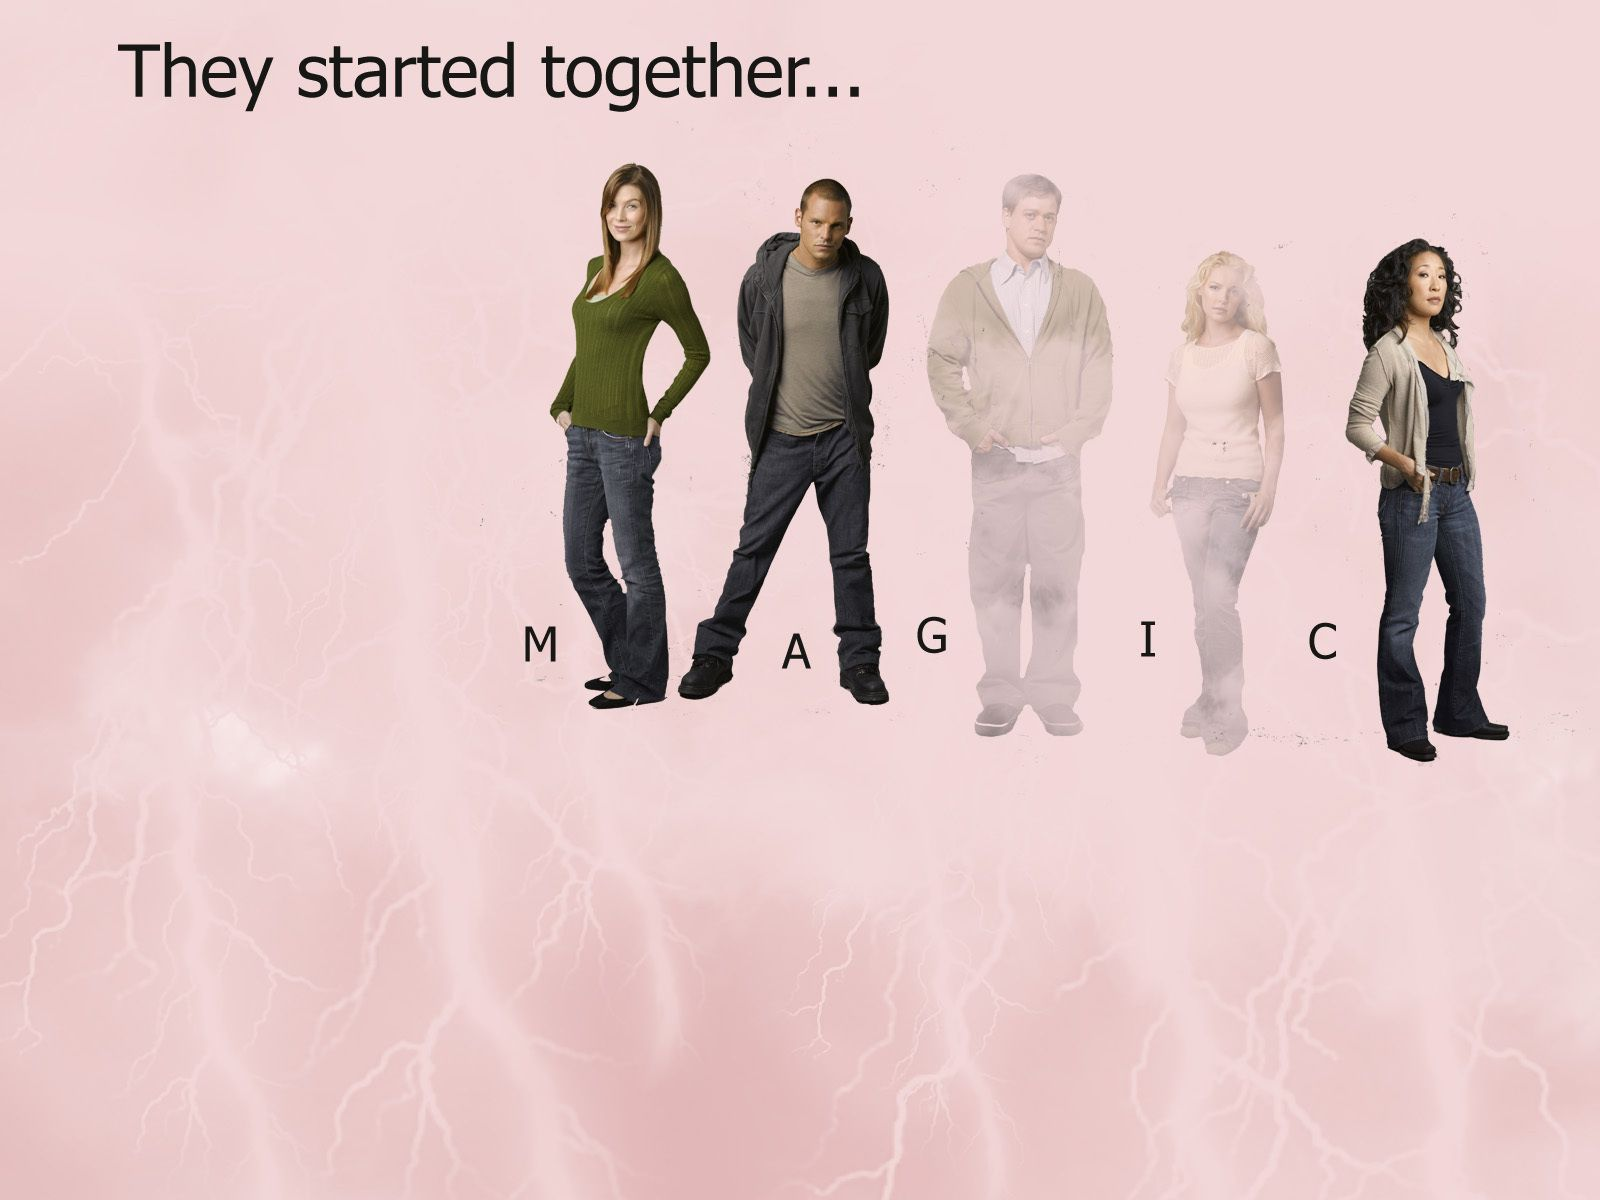 By the end of Season 10, it'll only be Grey. Greys